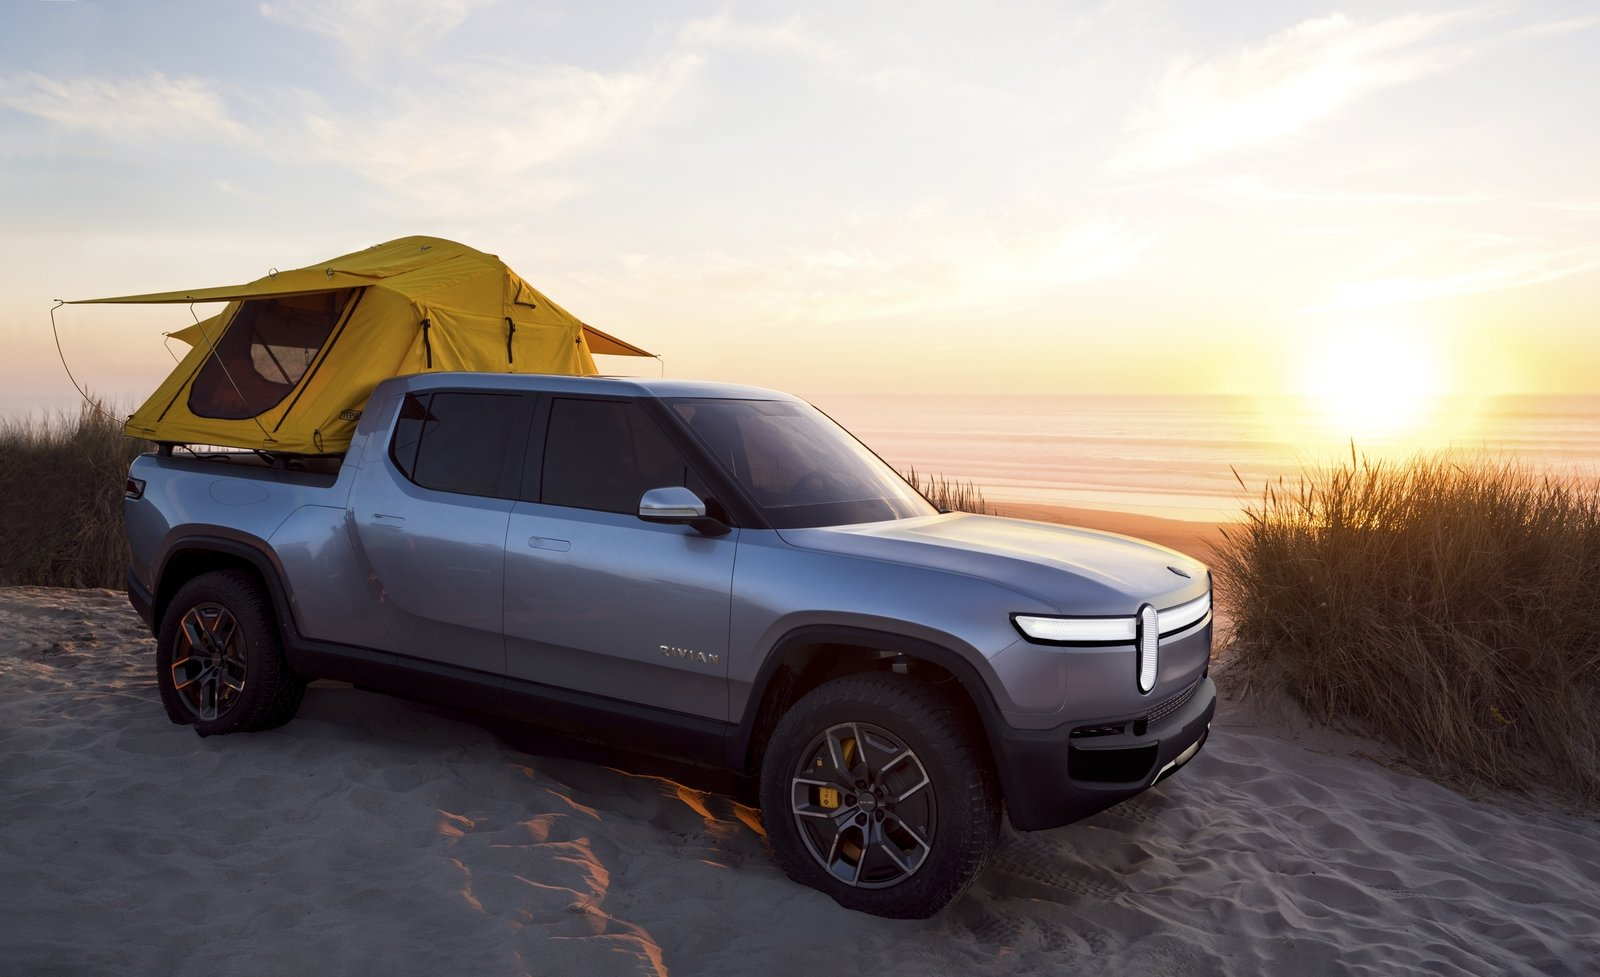 2020 Rivian R1T Pickup | Top Speed